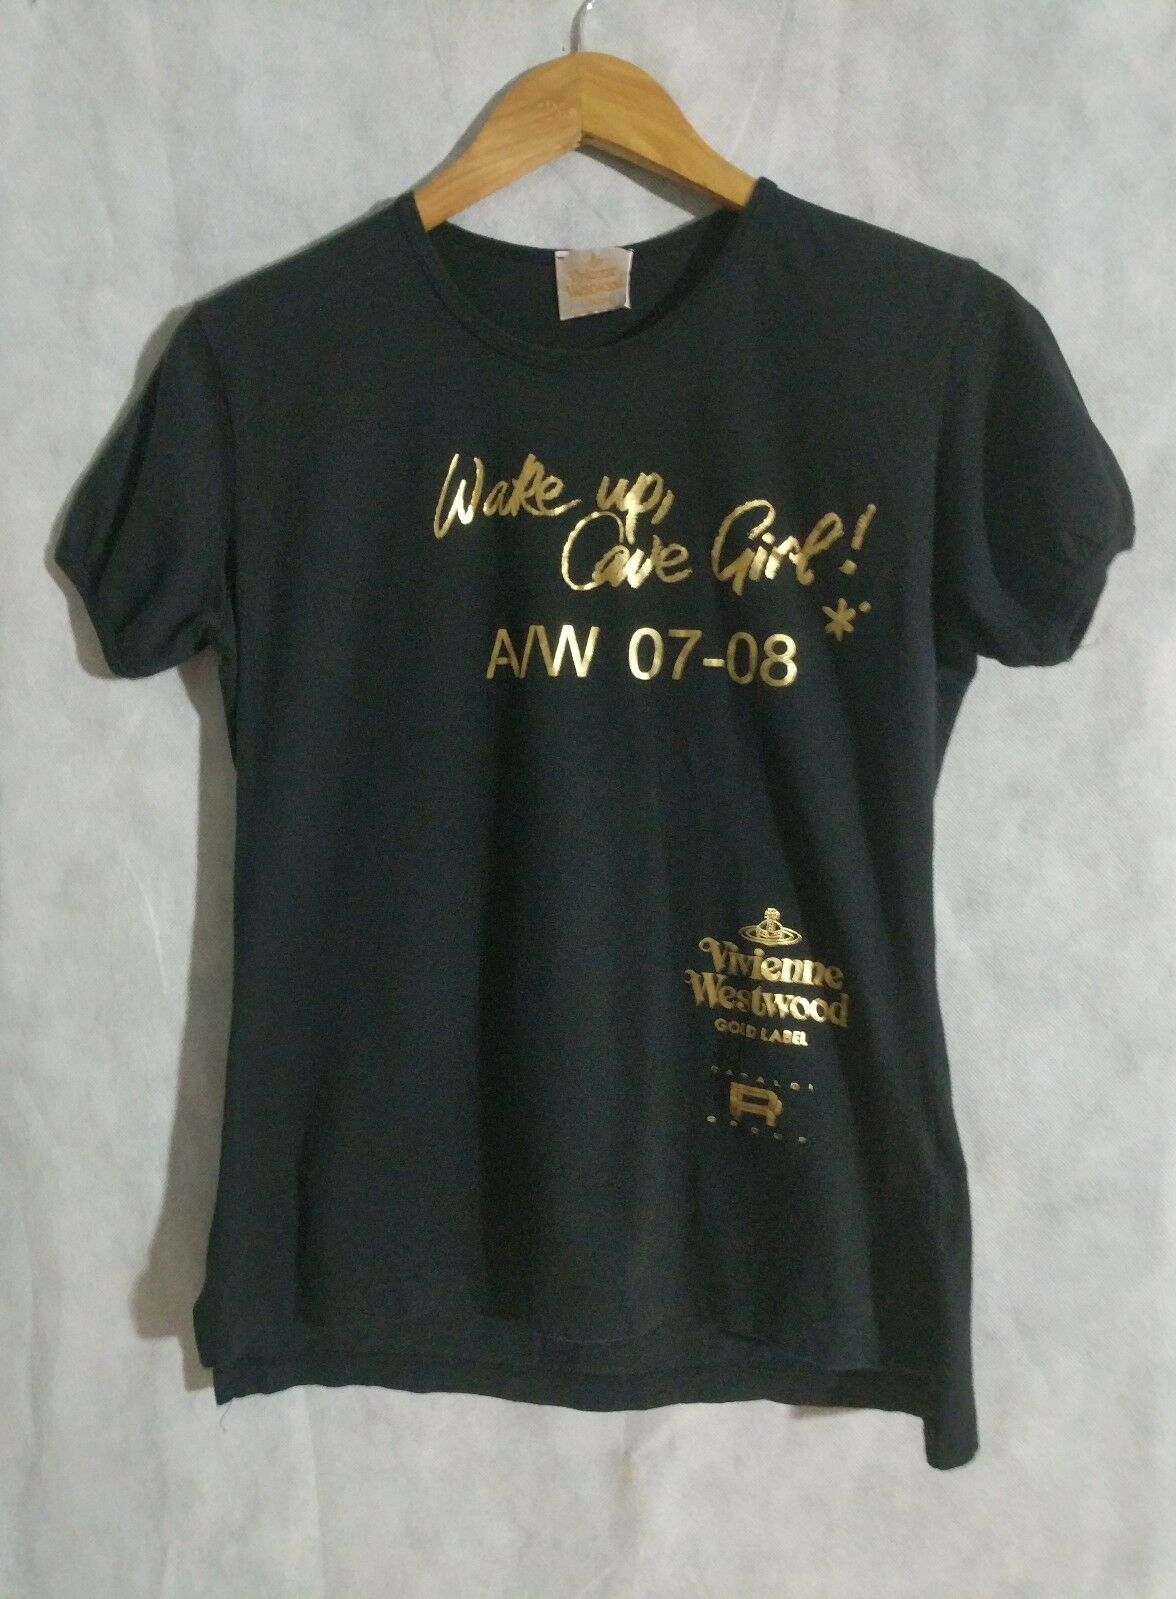 Vivienne Westwood AW 08 WAKE UP CAVE GIRL T Shirt Size 3